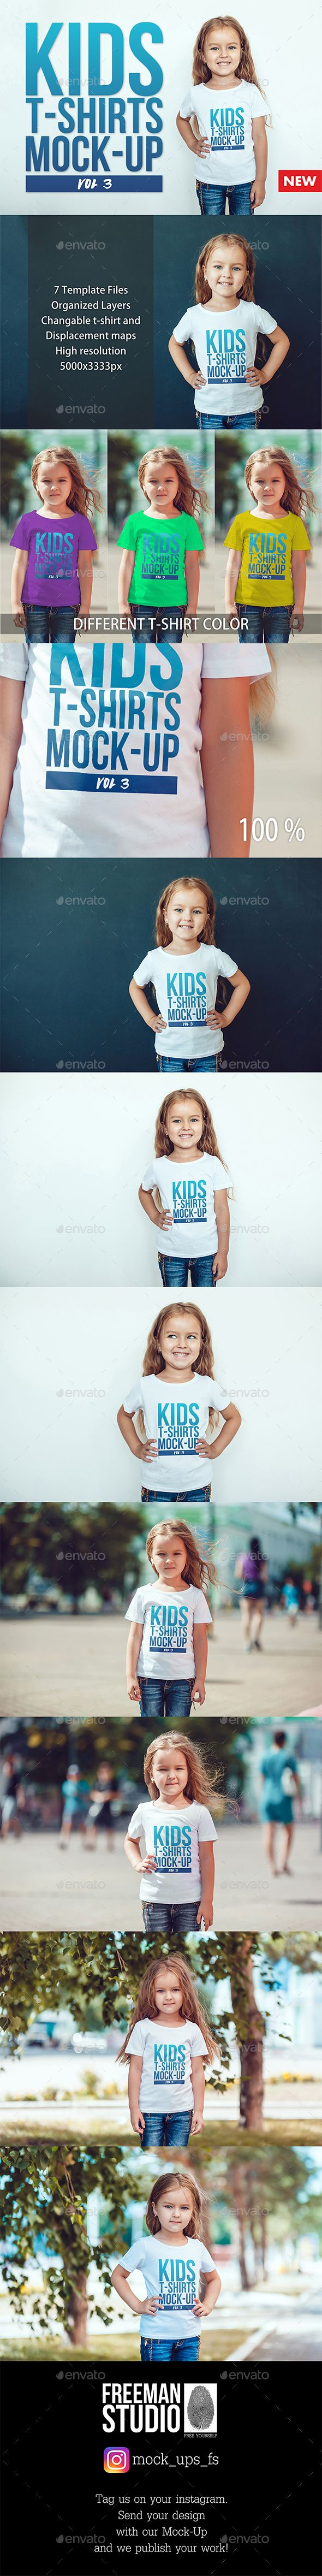 Kids T-Shirt Mock-Up by Freeman_Studio Kids T-Shirt Mock-Up 聽____________________________________________________________________ Easy to place your designs using smart